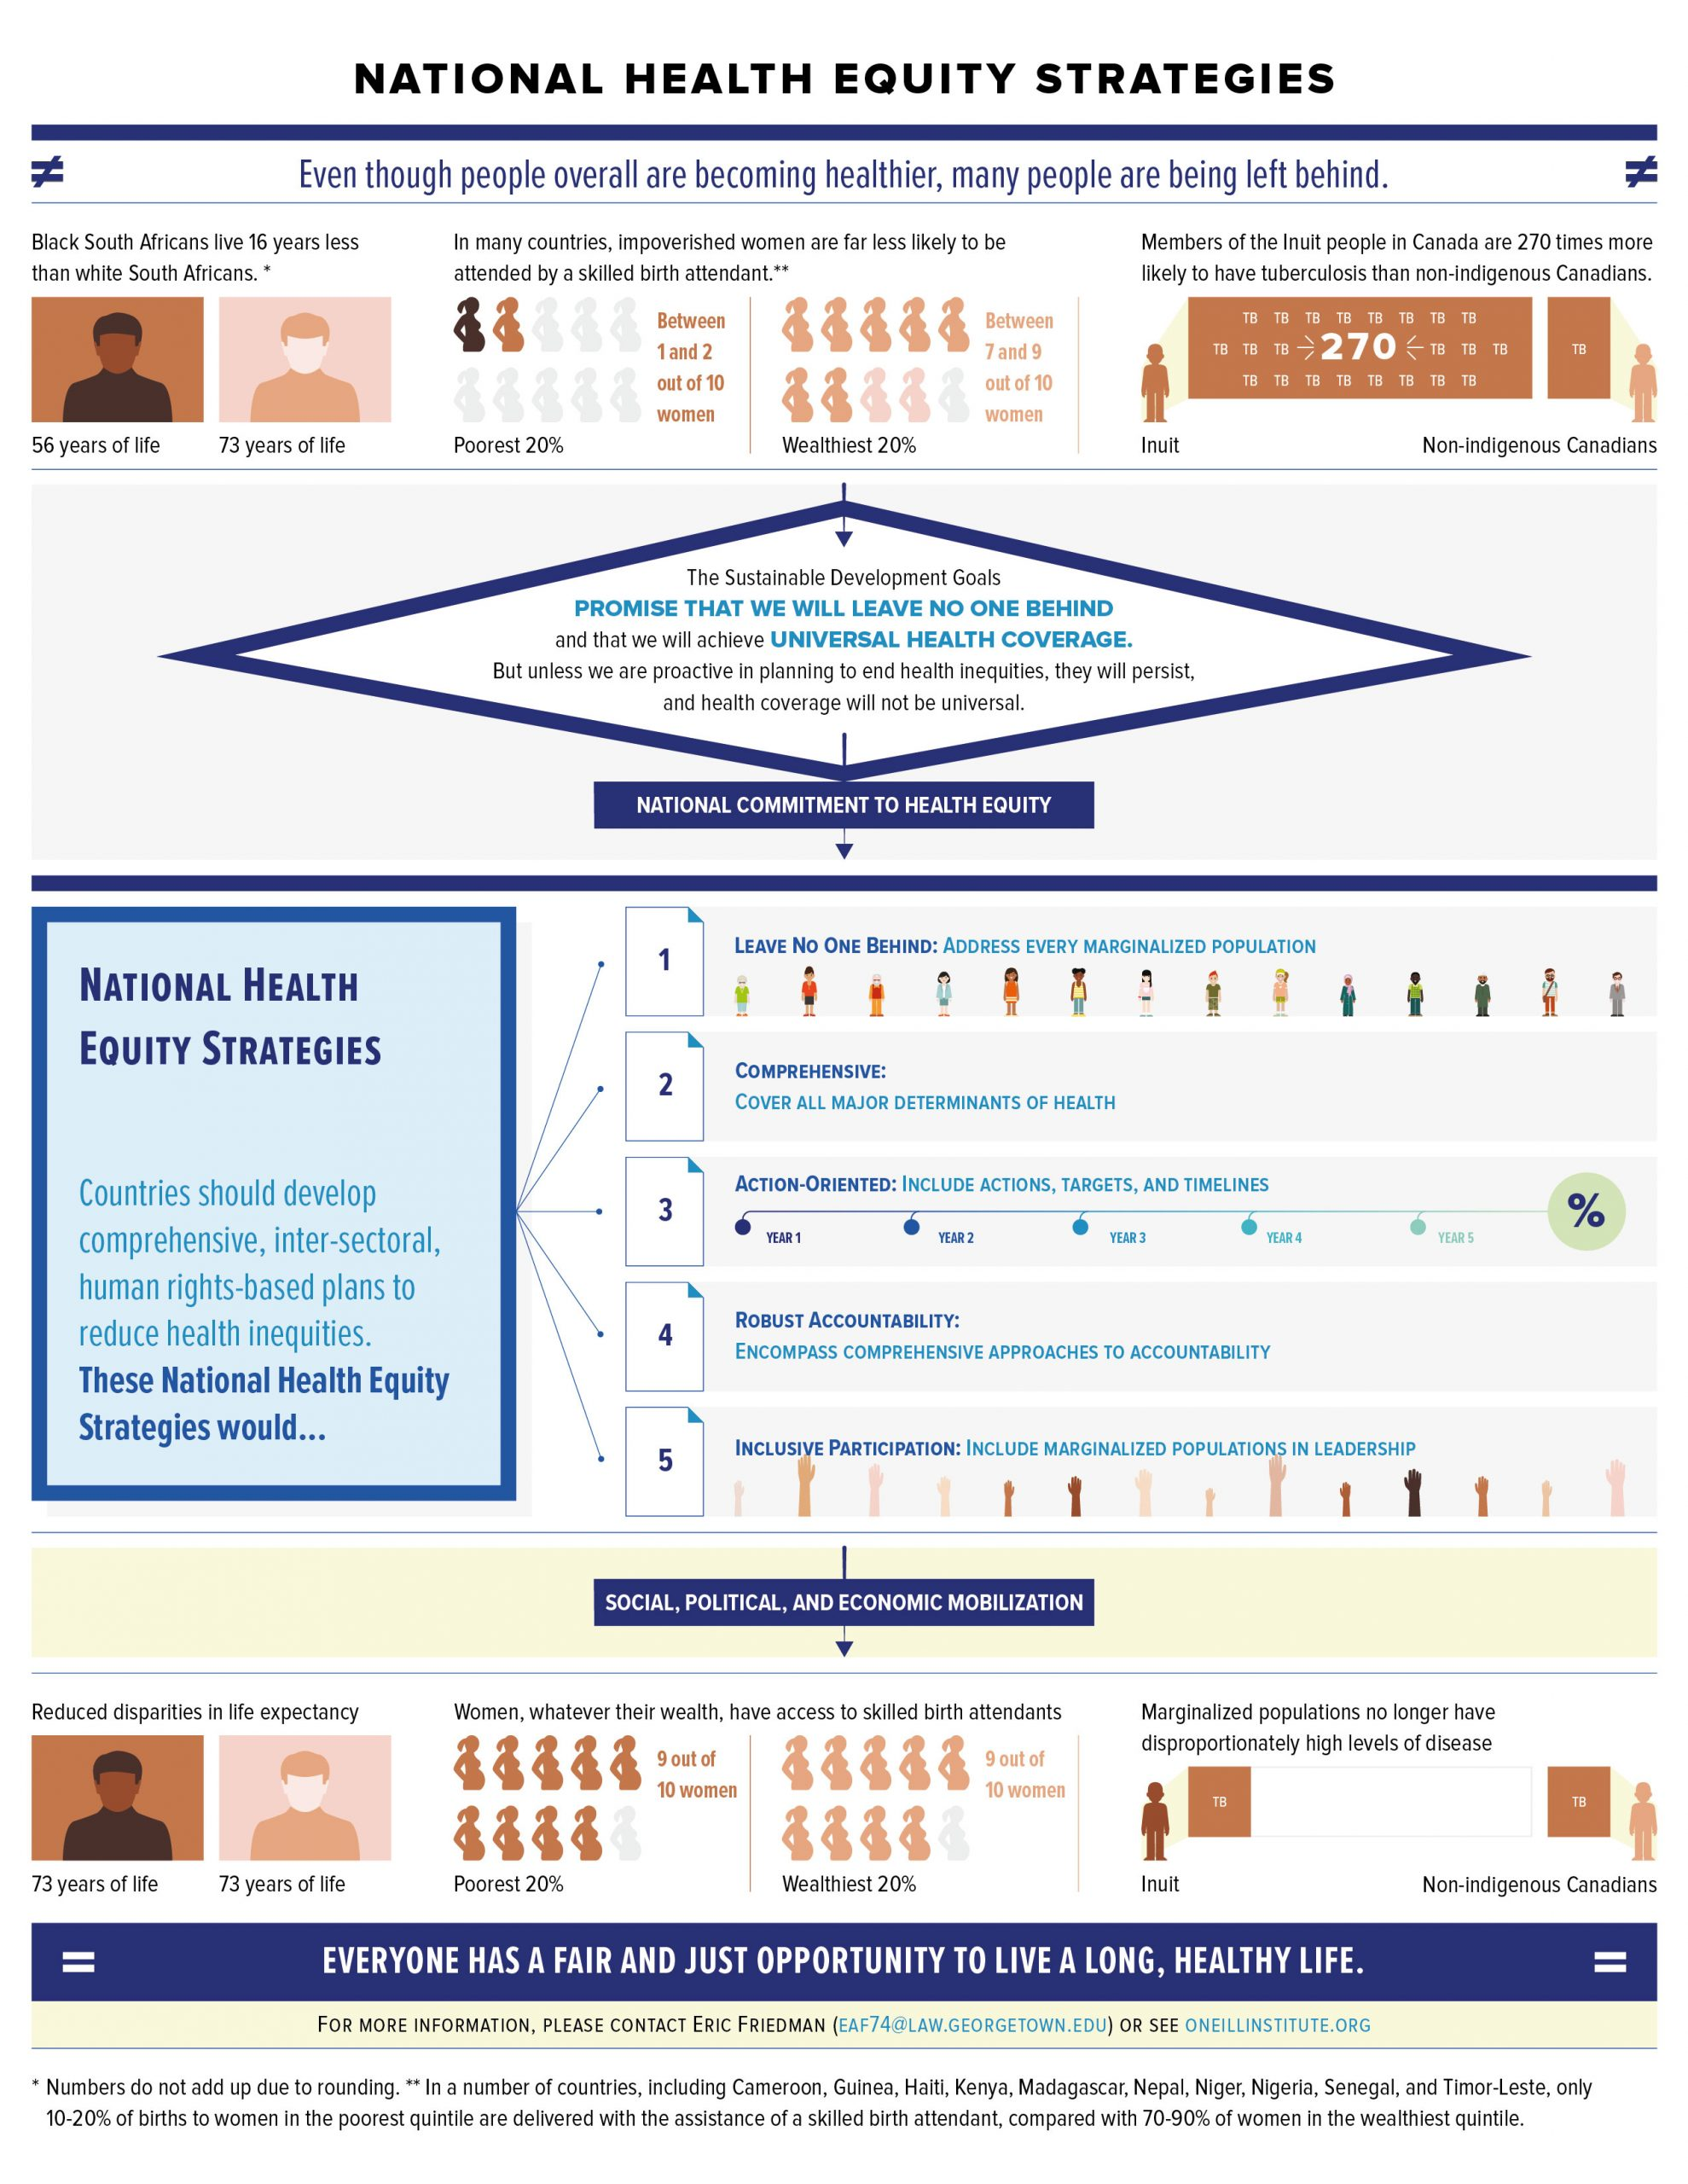 NHES Infographics